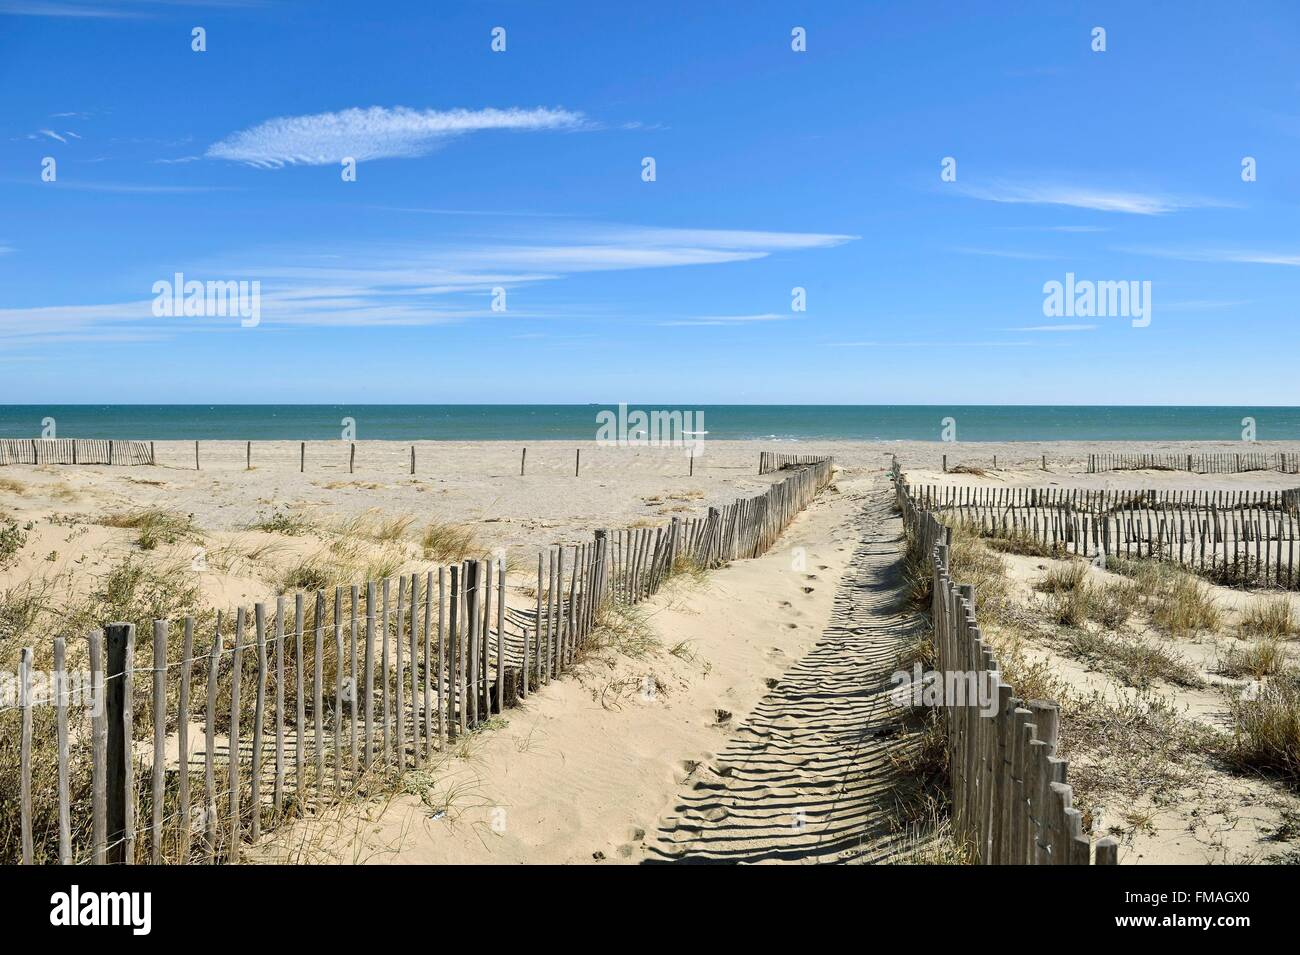 France, Pyrenees Orientales, Canet en Roussillon, the beach - Stock Image